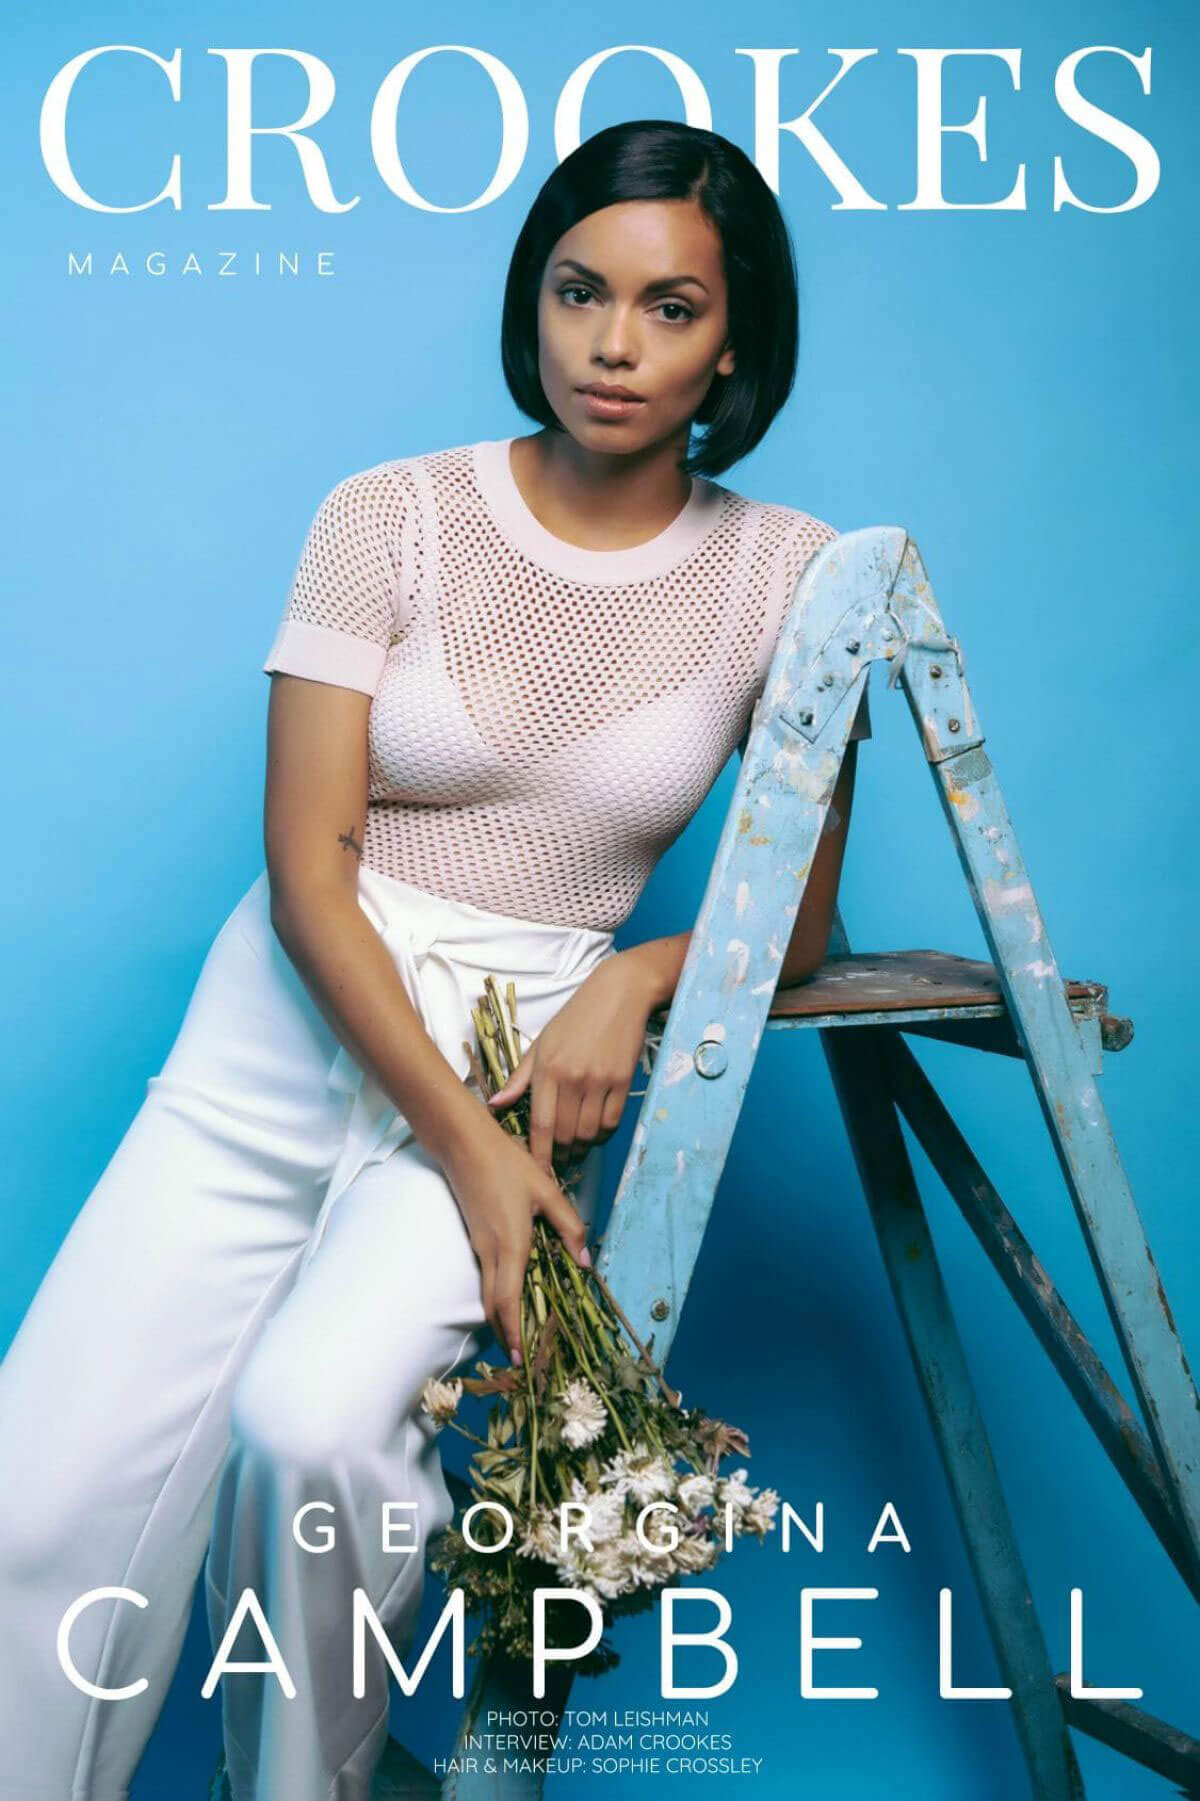 Georgina Campbell Poses for Crookes Magazine, December 2017